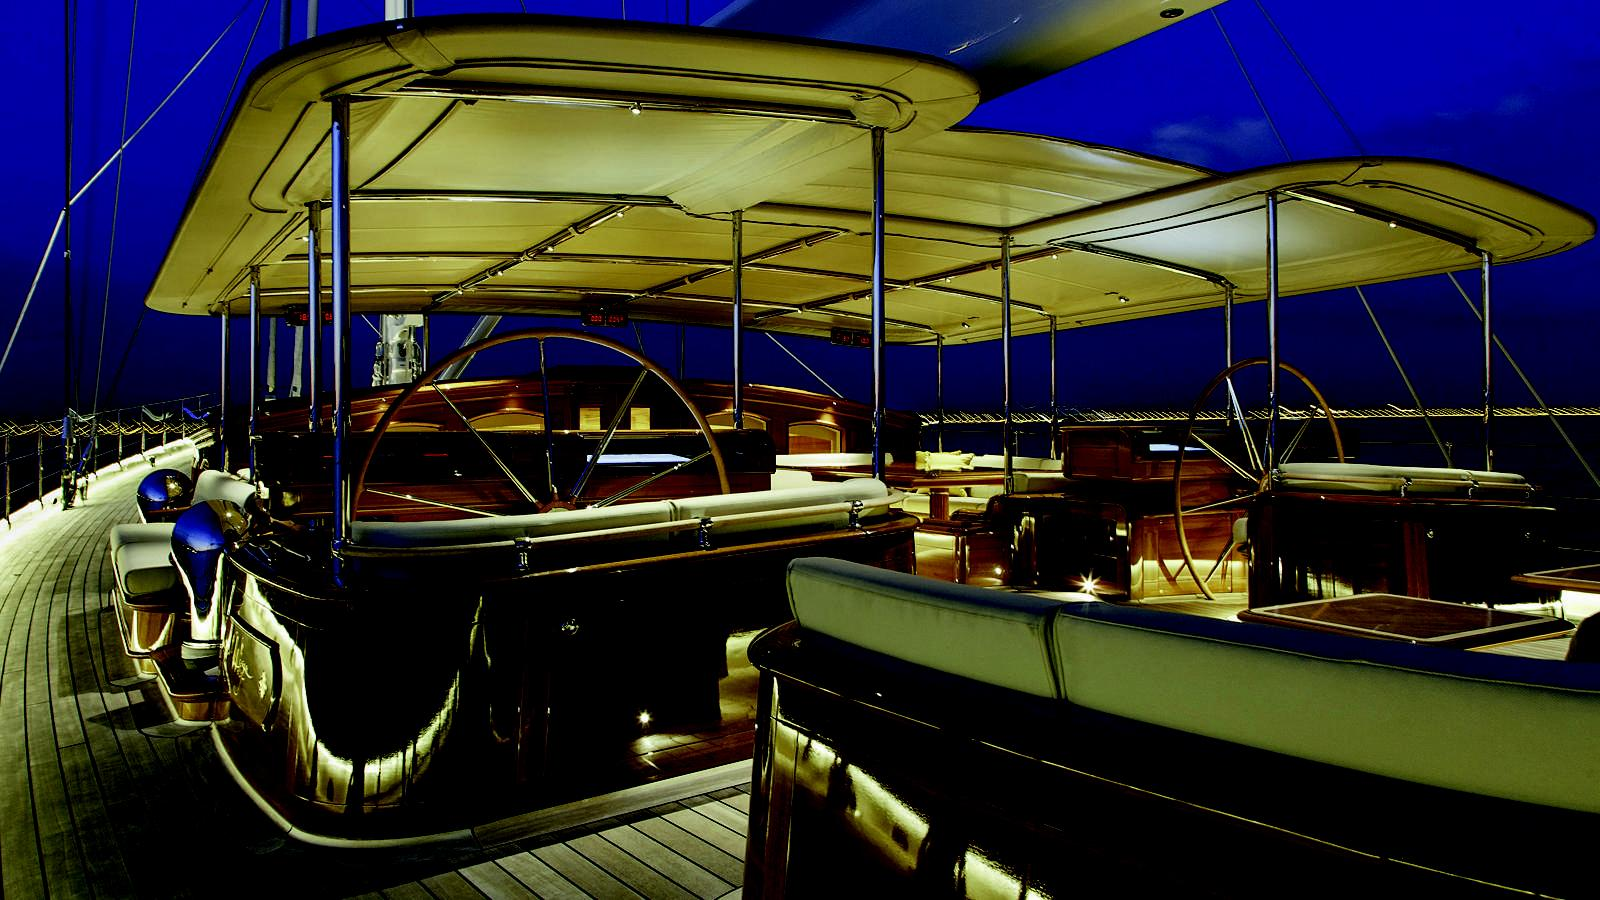 wisp-sailing-yacht-royal-huisman-2014-48m-upper-deck